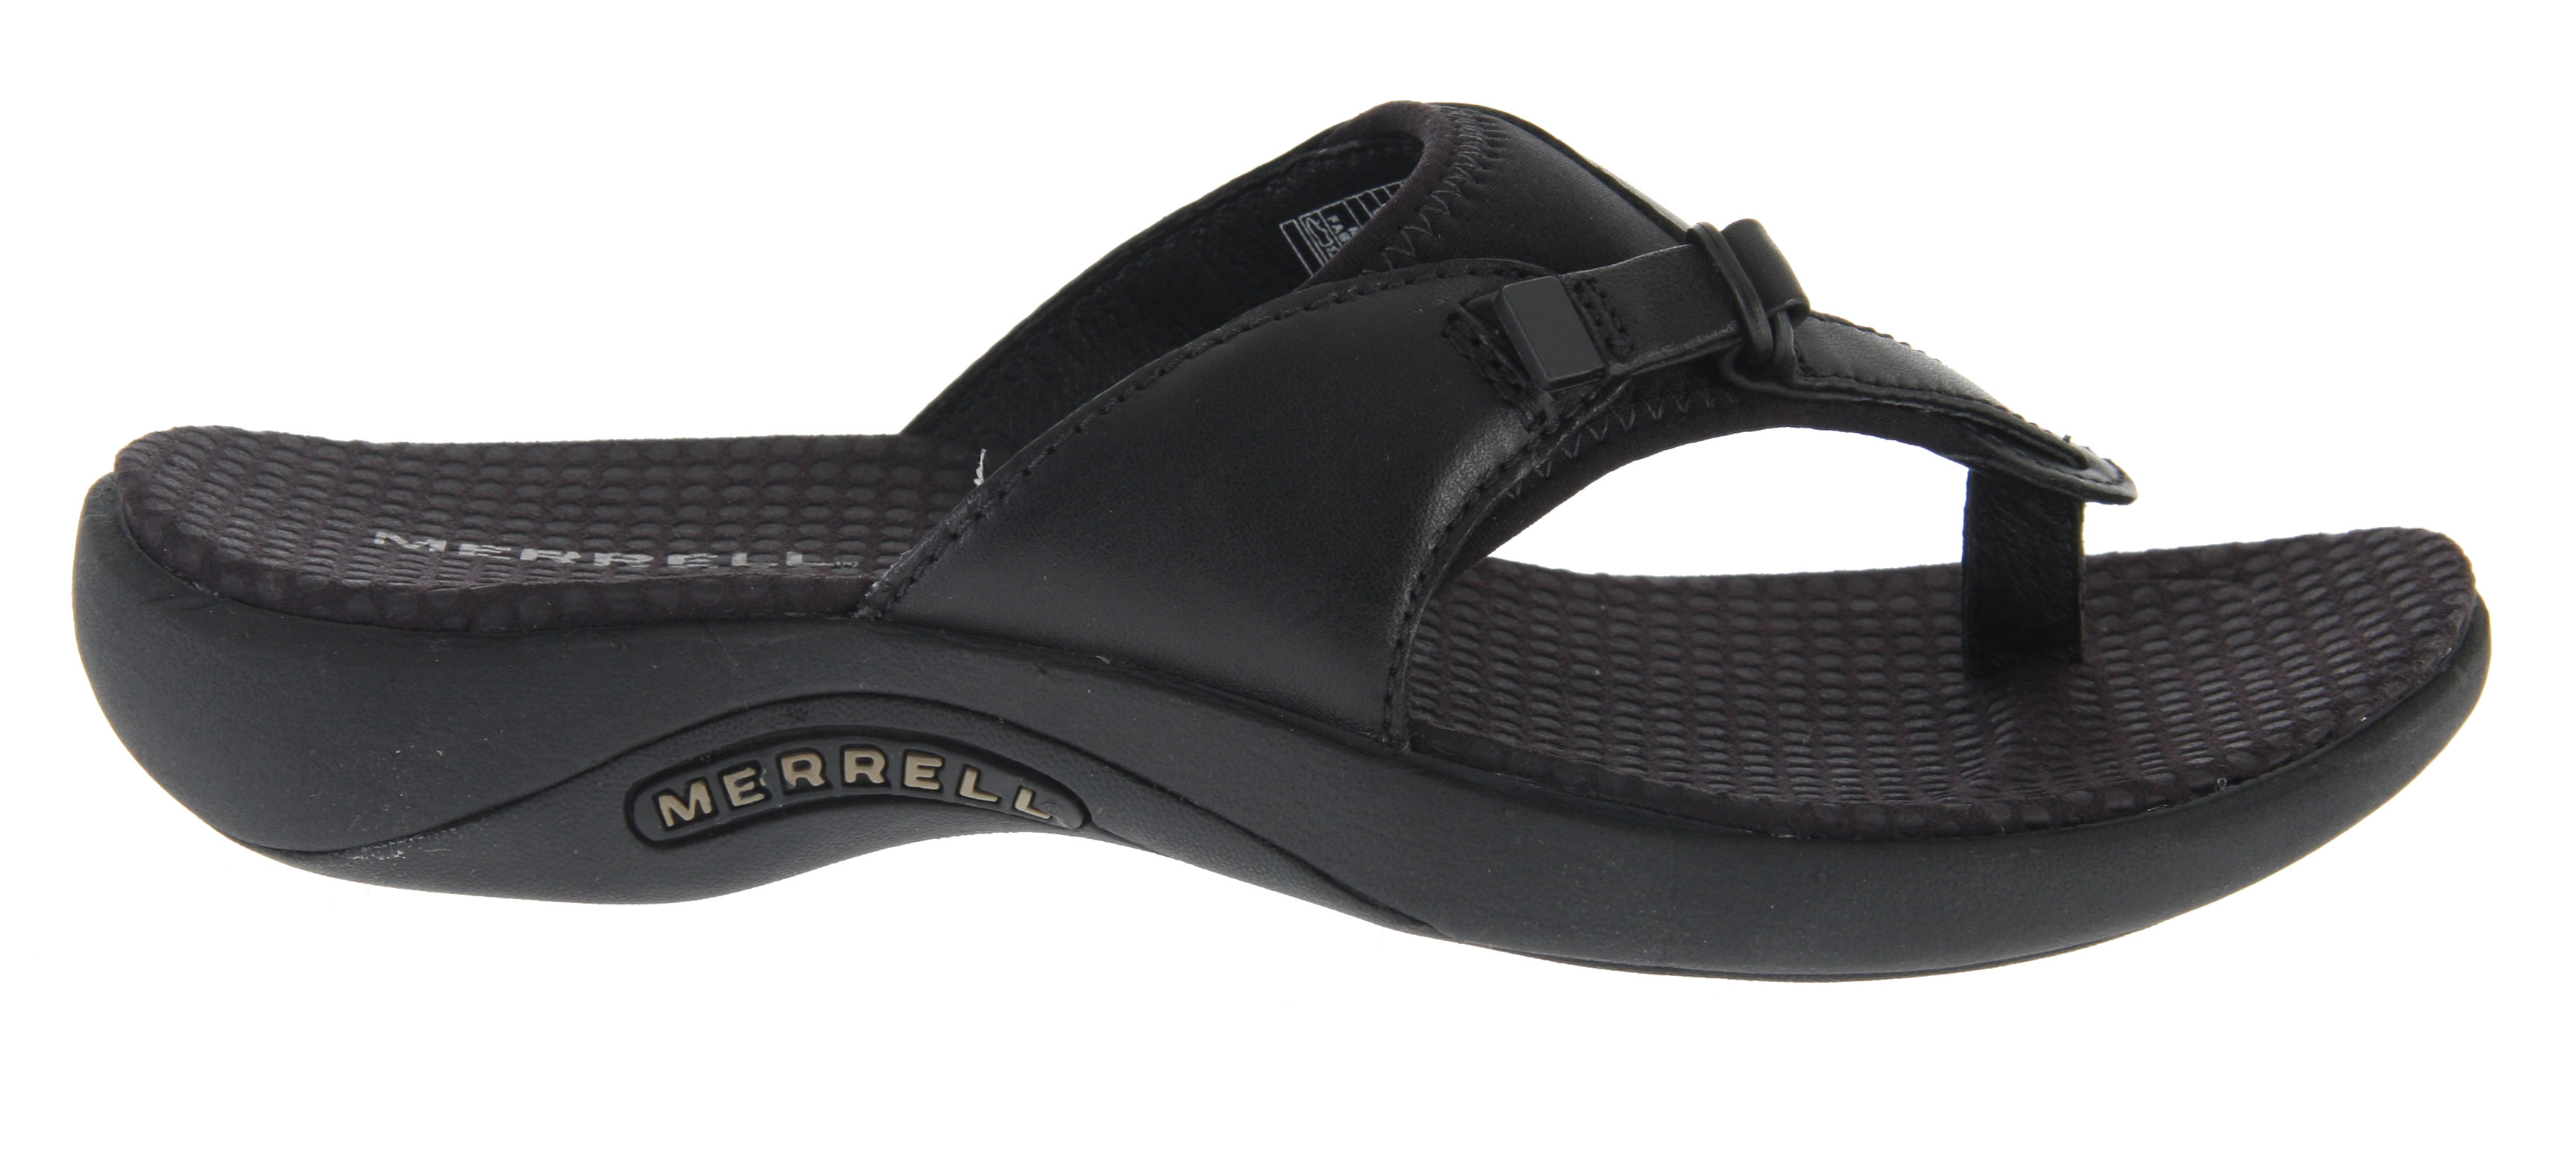 Surf On the Gardena Thong sandal Merrell laid a leaf of nubuck leather over a thong and added neoprene/Lycra to give you a comfortable, beach-tight fit. An EVA midsole with gender-specific QForm (R) Comfort stride alignment combines with an Oasis Sole for highly cushioned traction.Key Features of the Merrell Gardena Thong Sandals: Cement construction provides lightweight durability Nubuck leather and Lycra (R) upper Lycra (R) lining Microfiber wrapped anatomical footbed with Aegis (R) antimicrobial solution Molded nylon arch shank QForm (R) comfort provides women's specific stride-sequenced cushioning Merrell (R) air cushion in the heel absorbs shock and adds stability Merrell Oasis Sole Sticky rubber Weight: 11 ozs. - $74.95